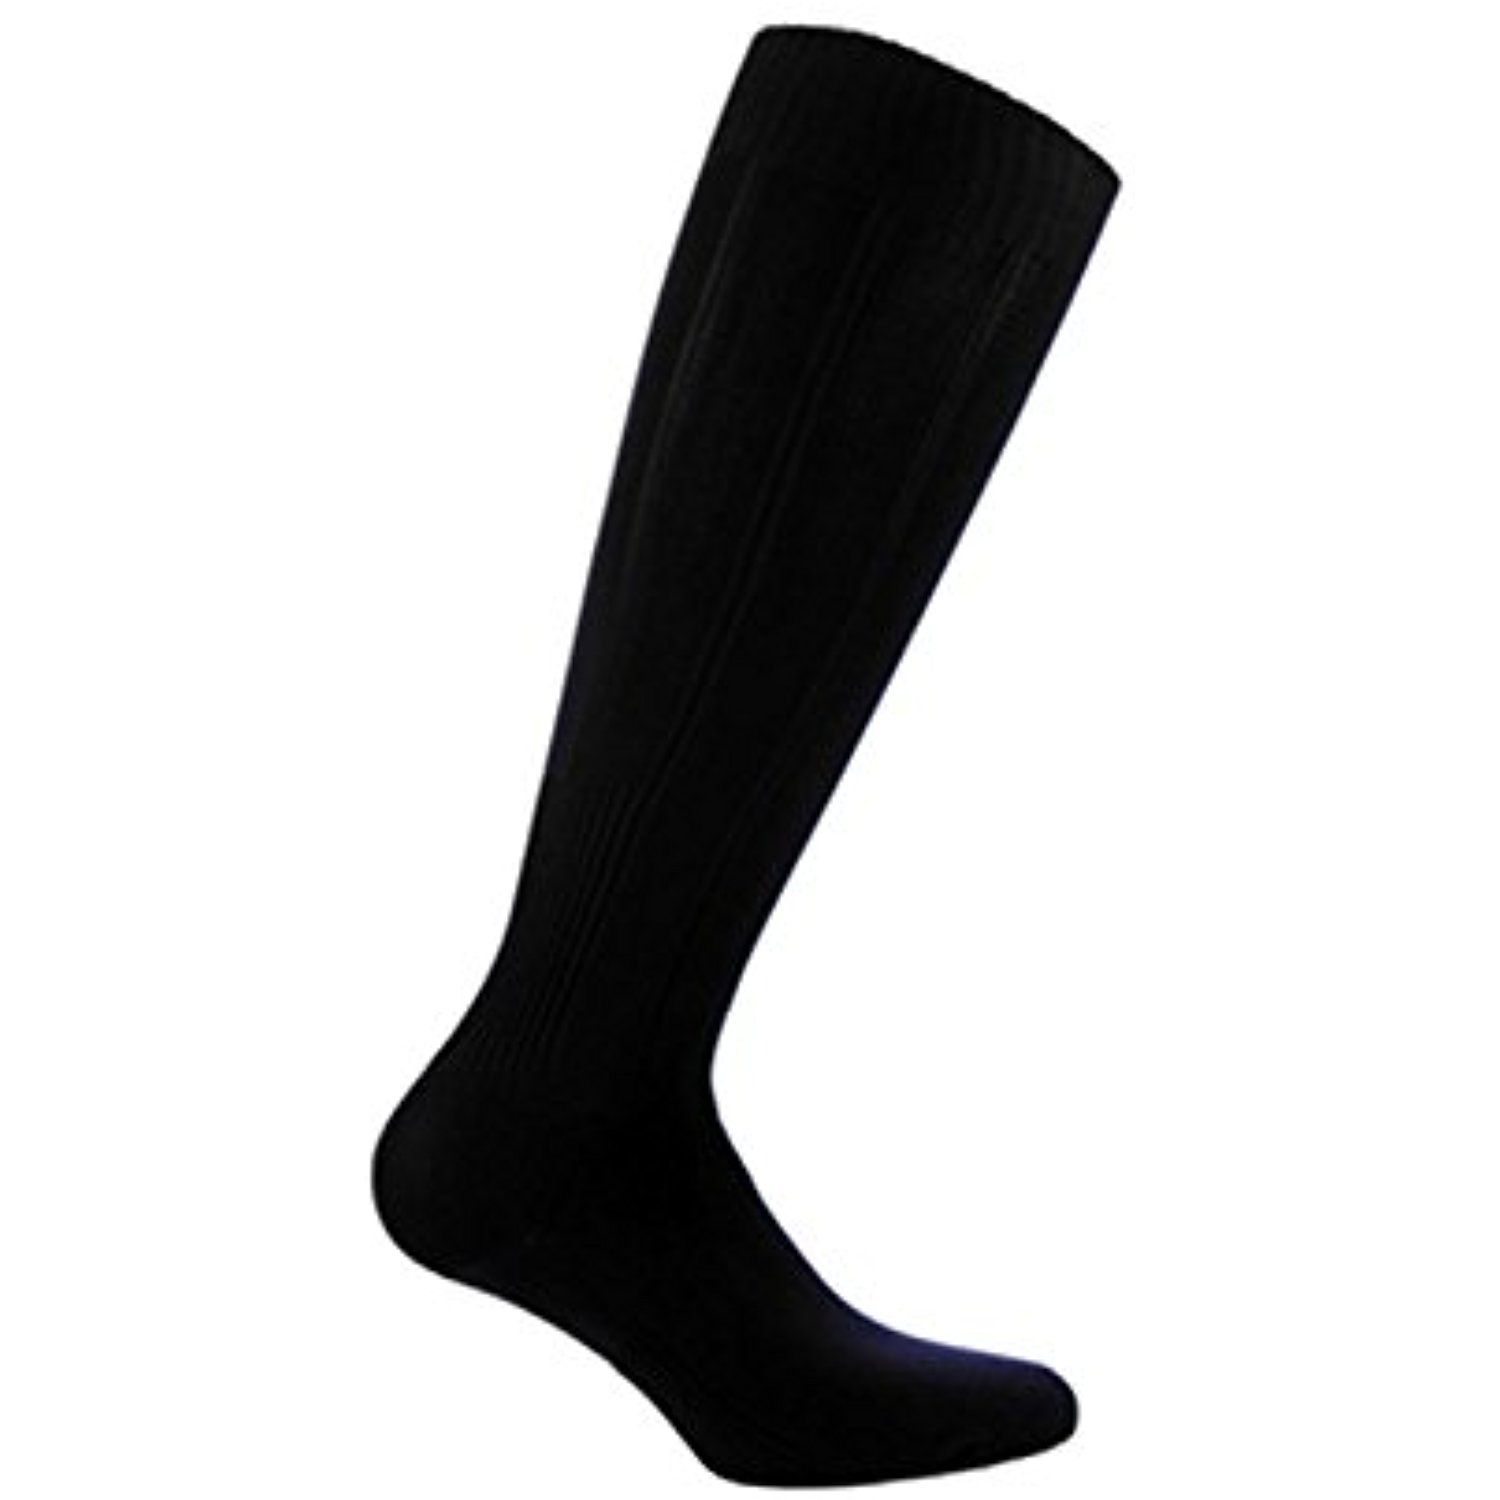 Campeon Soccer Long Socks Unisex For Youth Sports Long Socks Black Junior Size 7 8 Years Youth To 12 14 Years Old Kids Click I Long Socks Socks Youth Sports